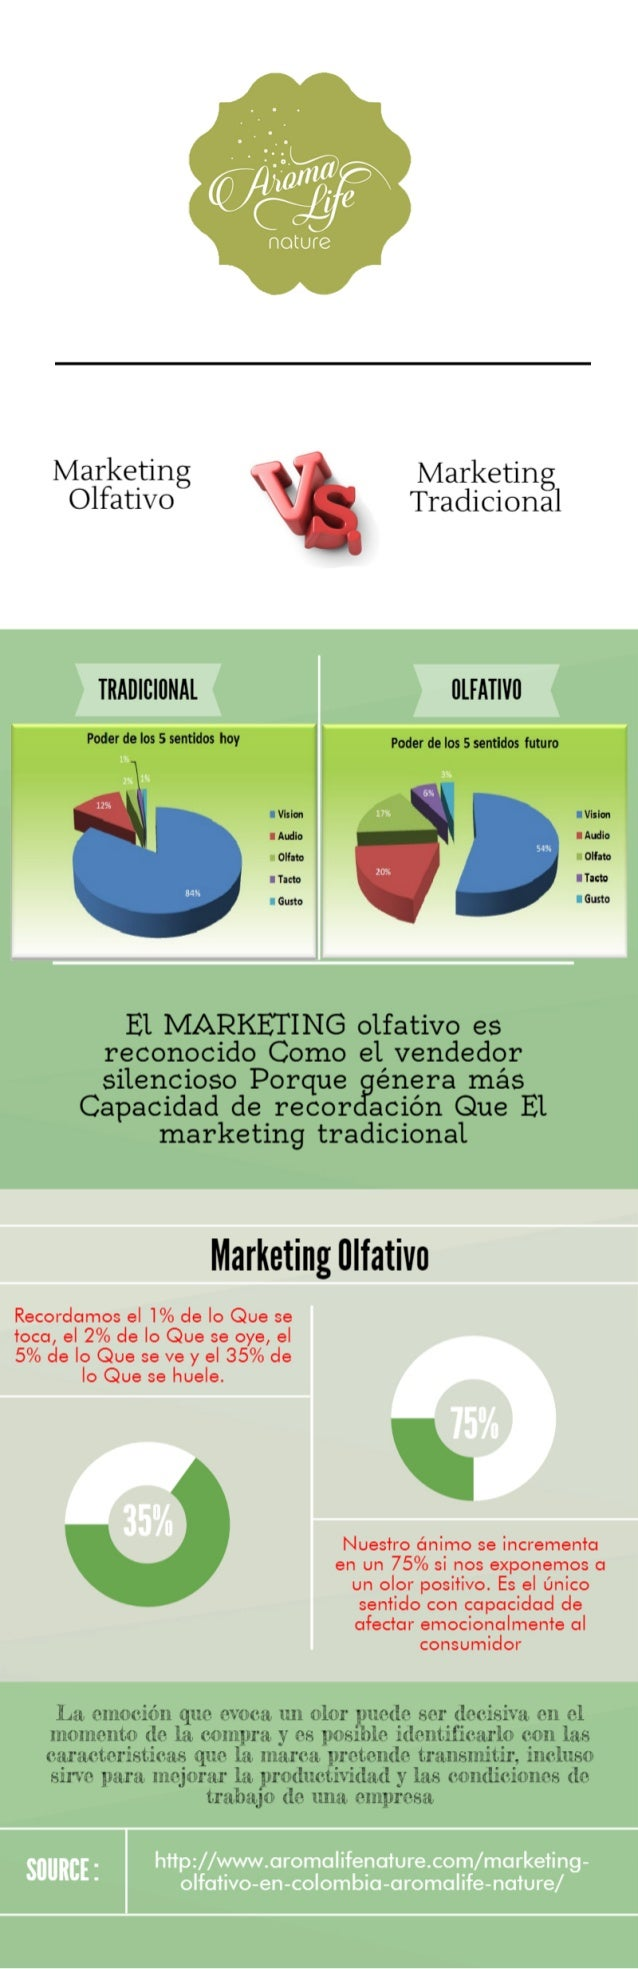 MARKETING OLFATIVO VS. MARKETING TRADICIONAL